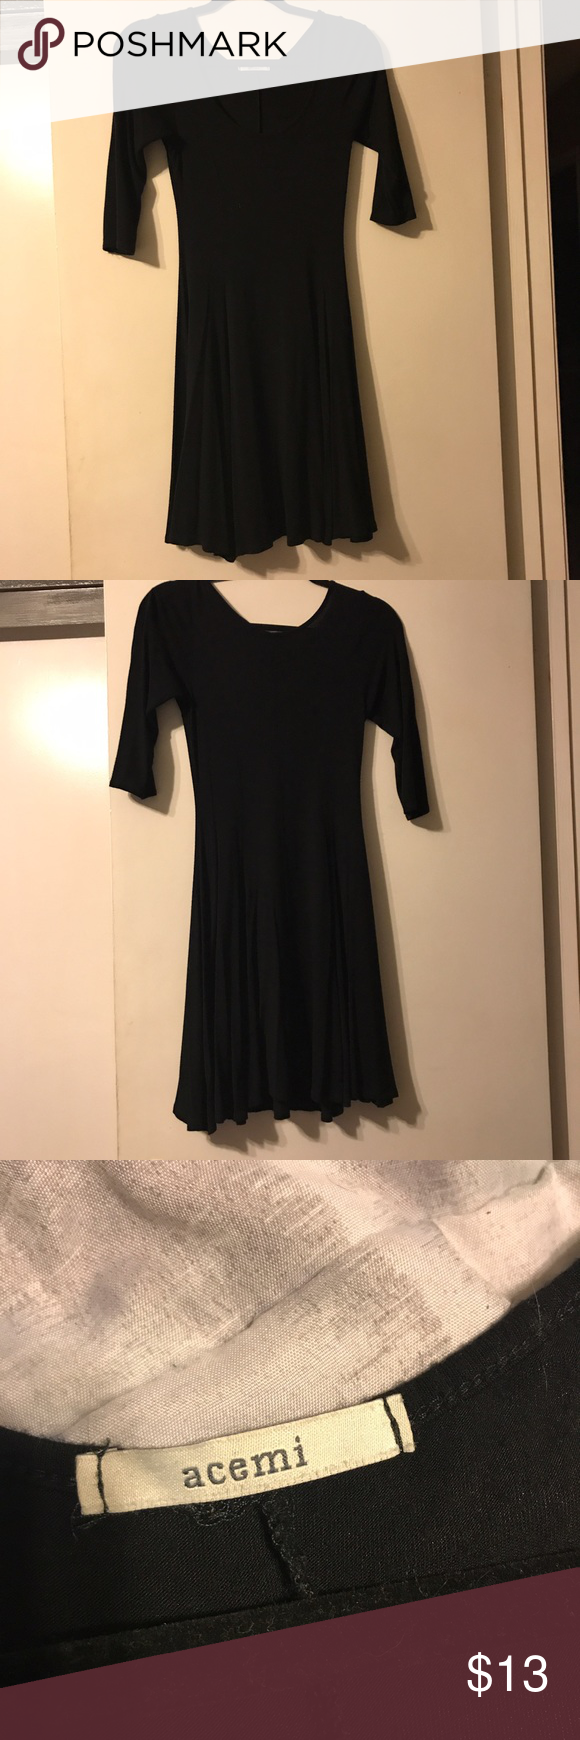 TJ Maxx Black Dresses